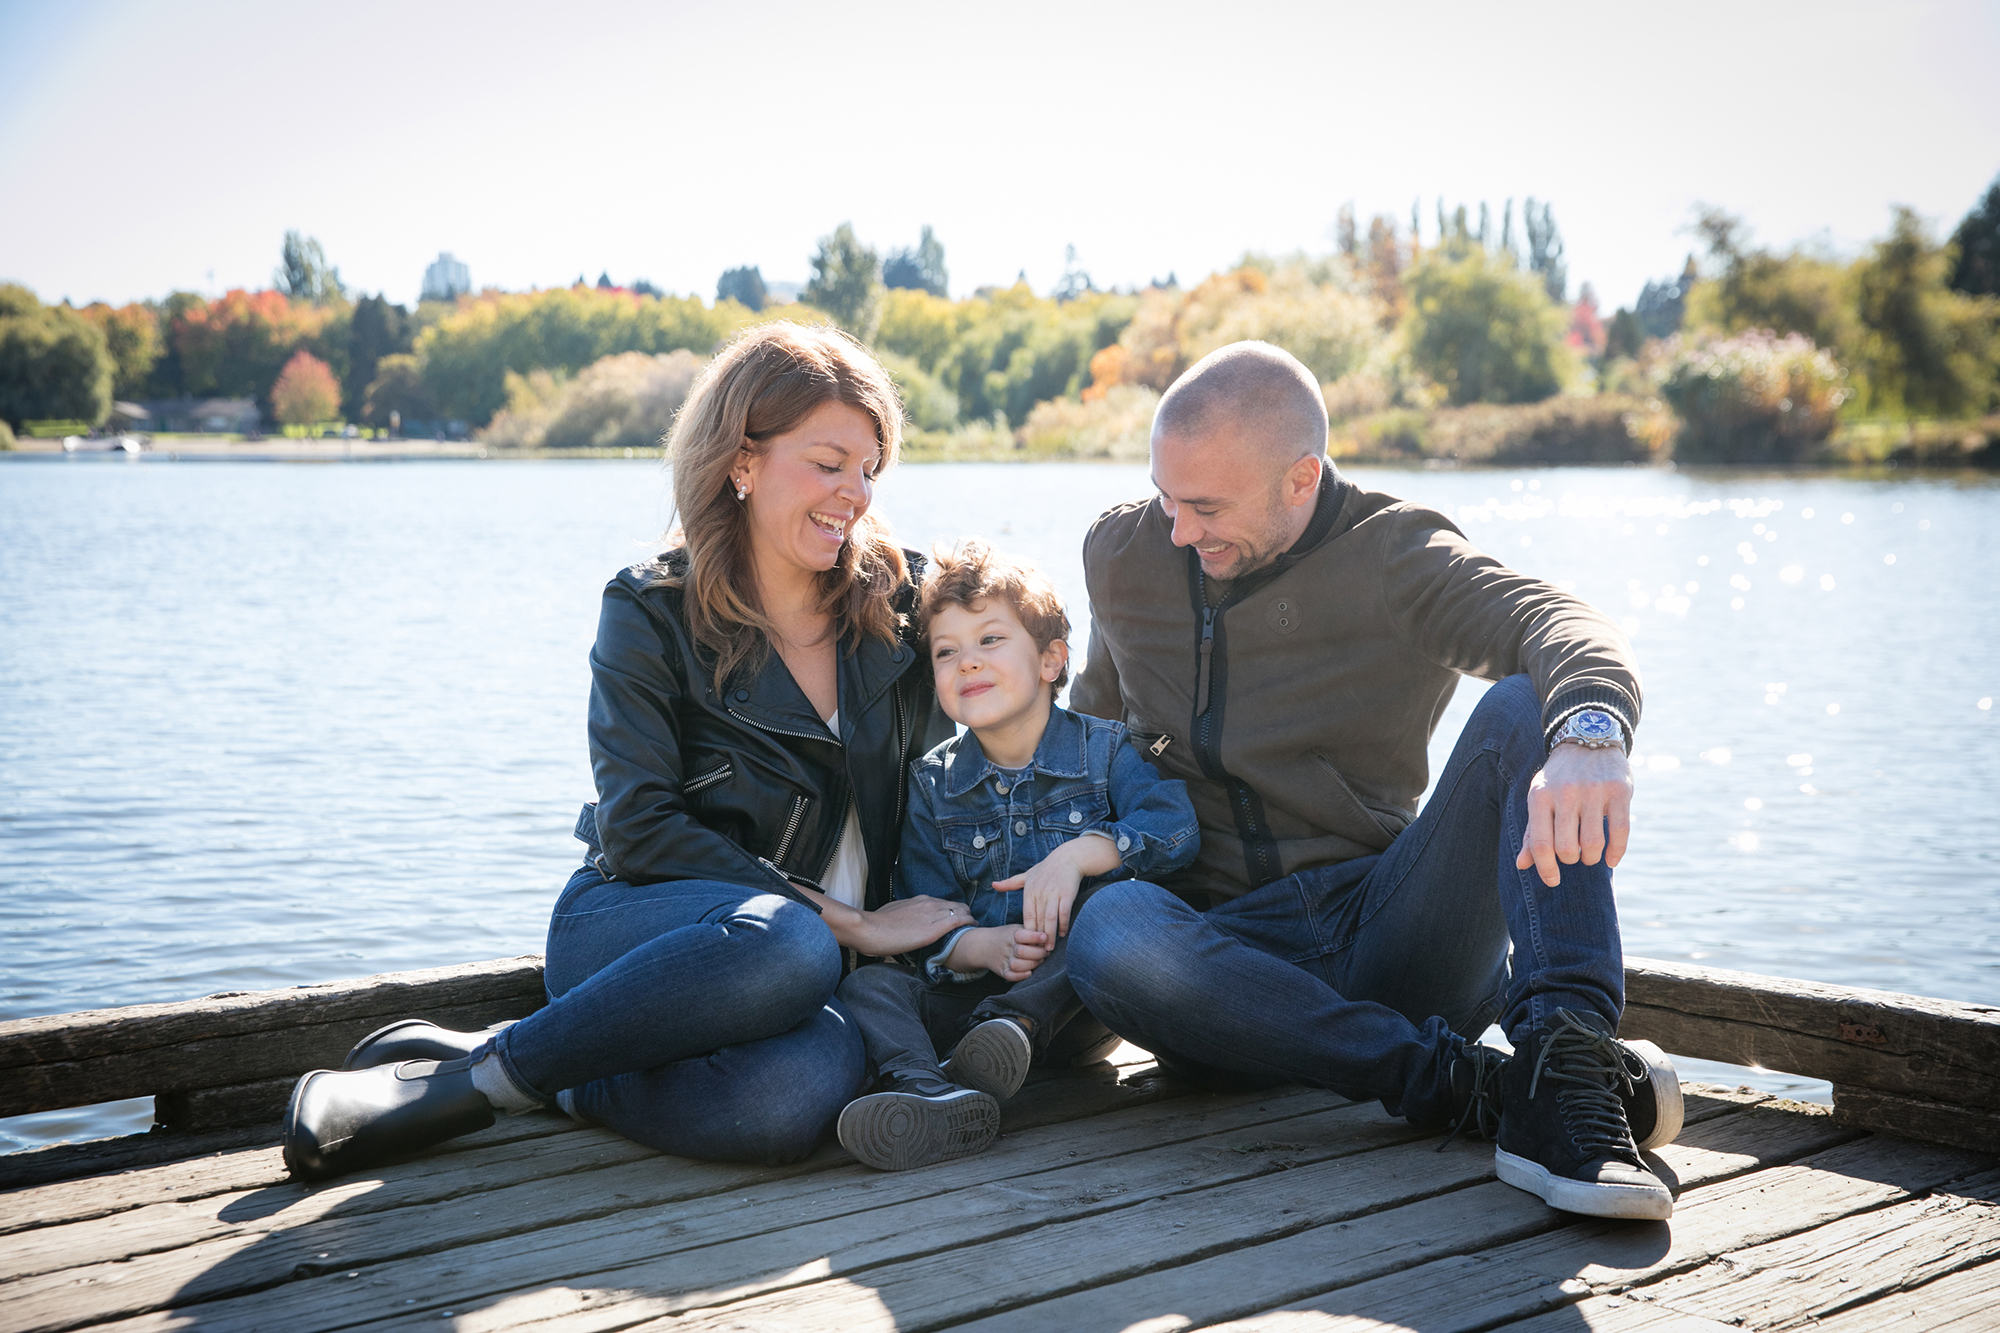 Trout Lake Vancouver Fall Family photo Session